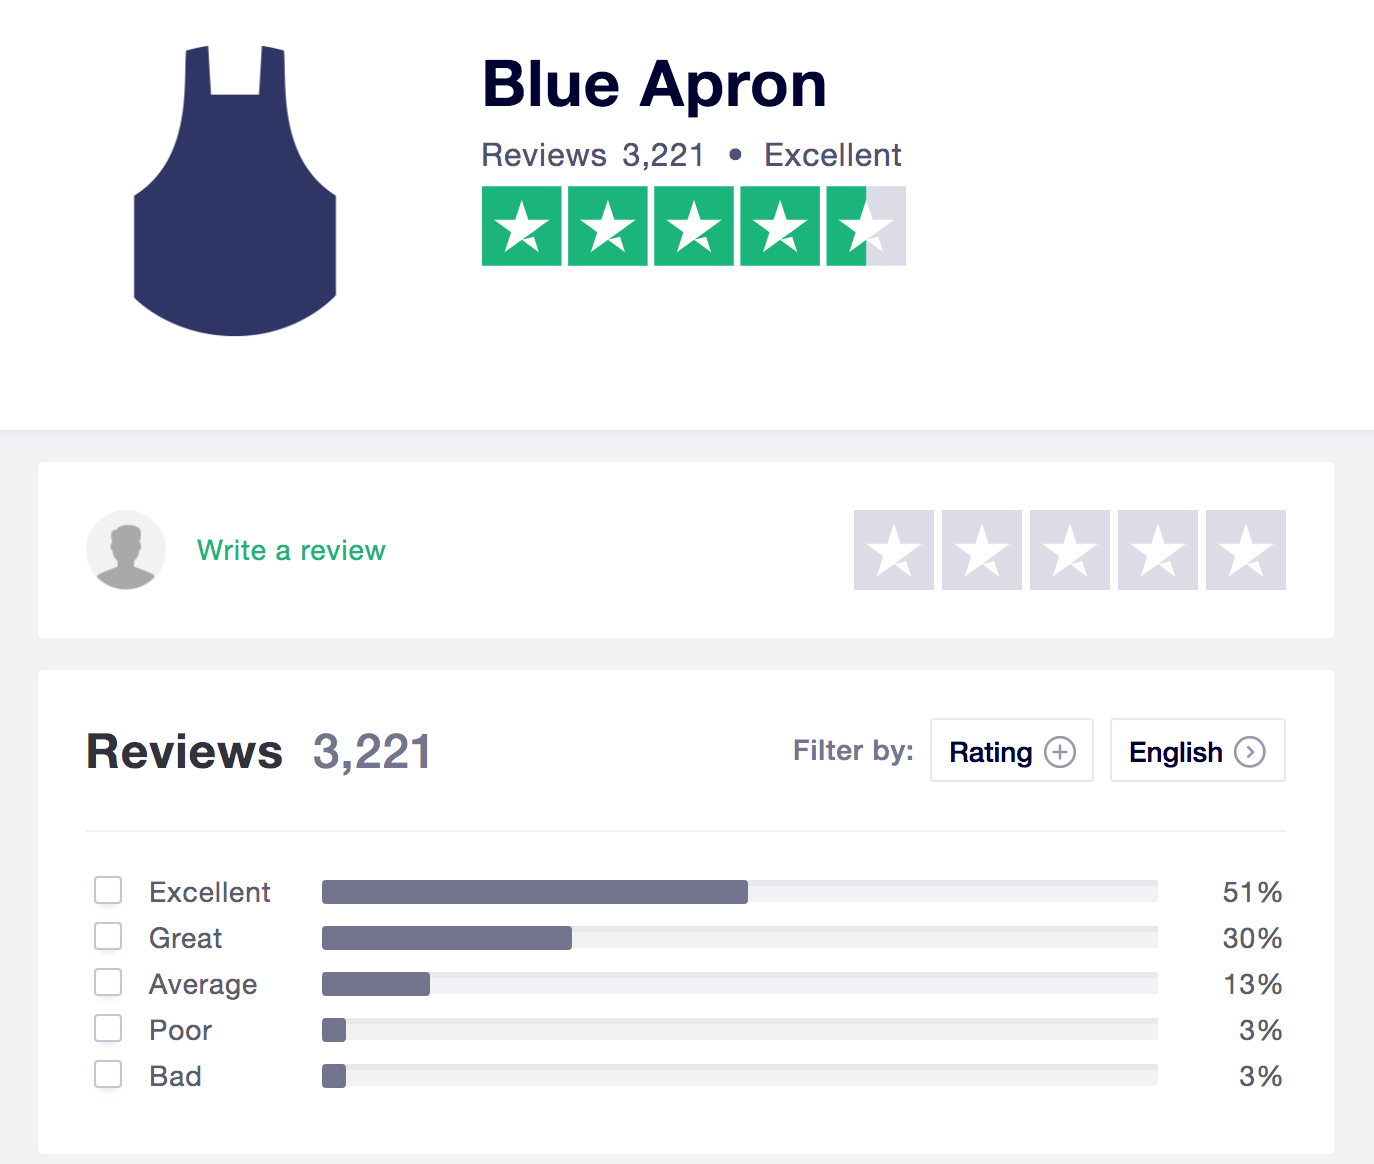 Blue apron reviews vs alternatives